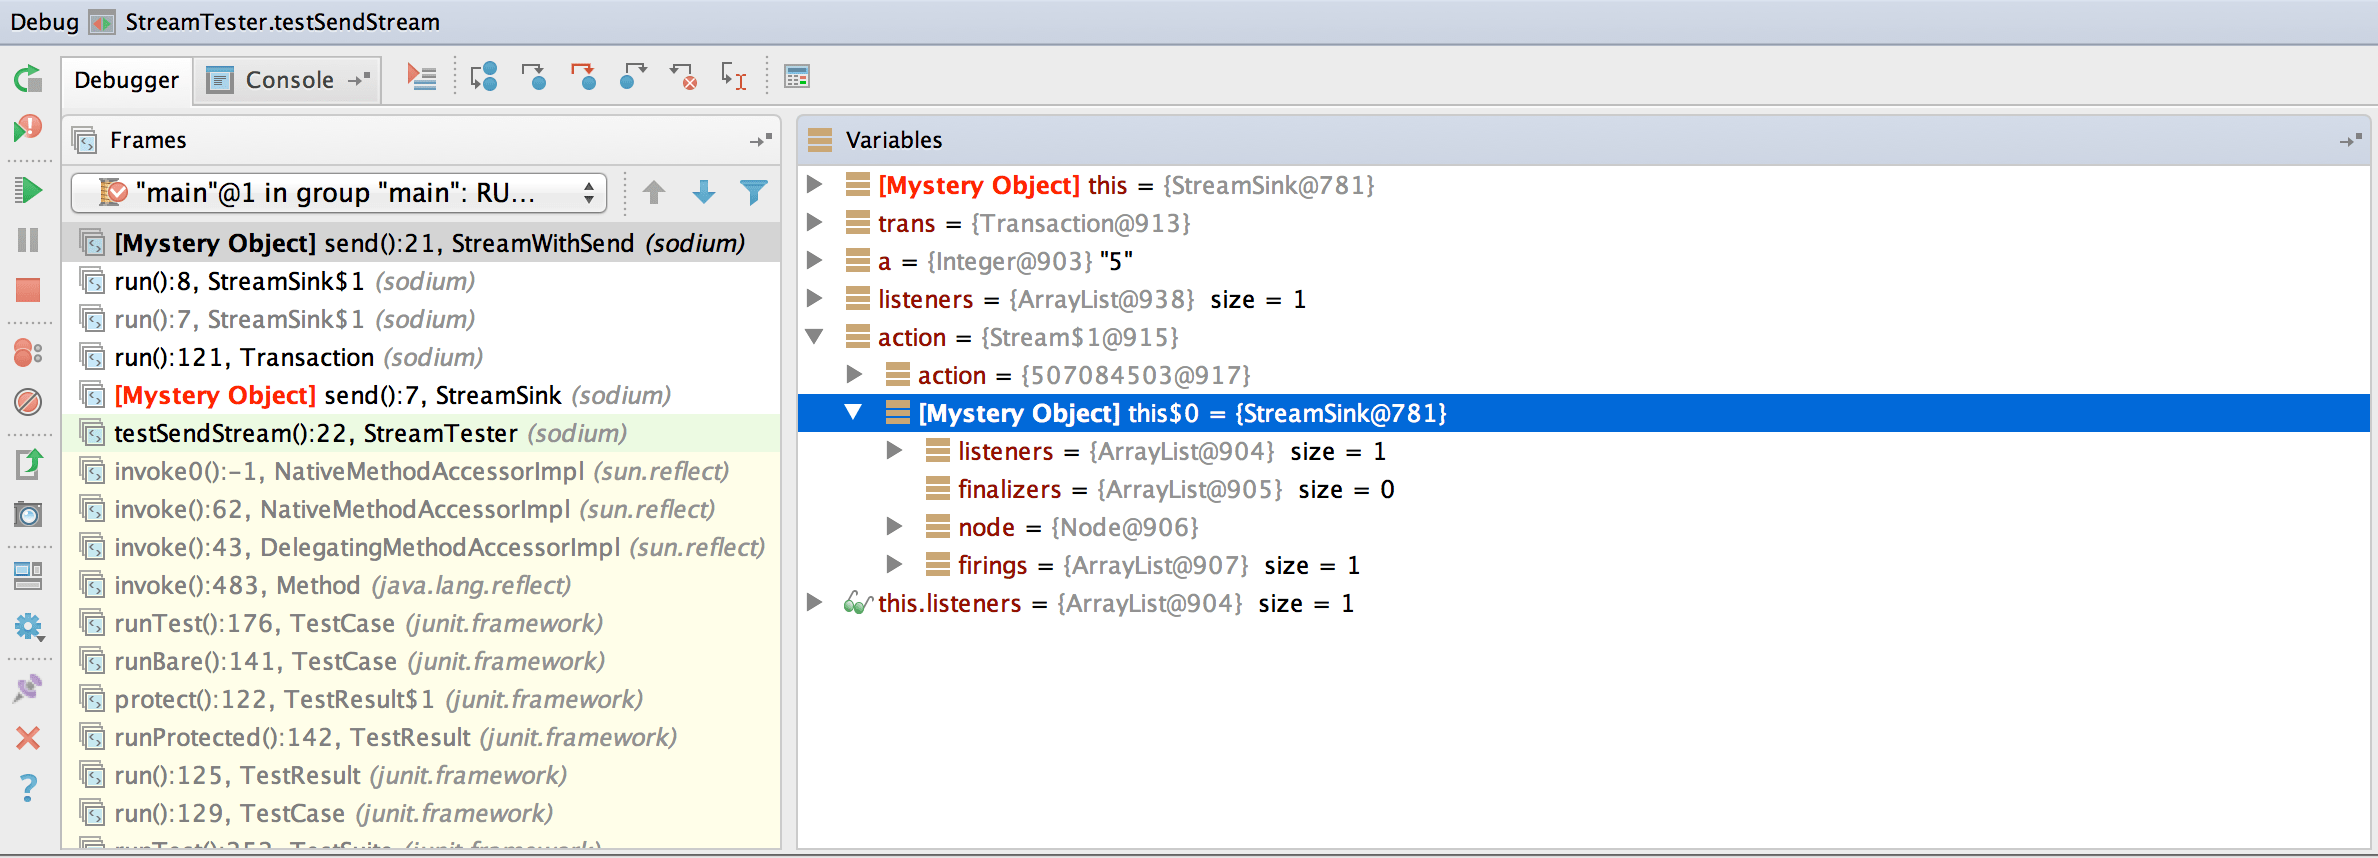 What Does It Mean If A Variable Has The Name This 0 In Intellij Idea While Debugging Java